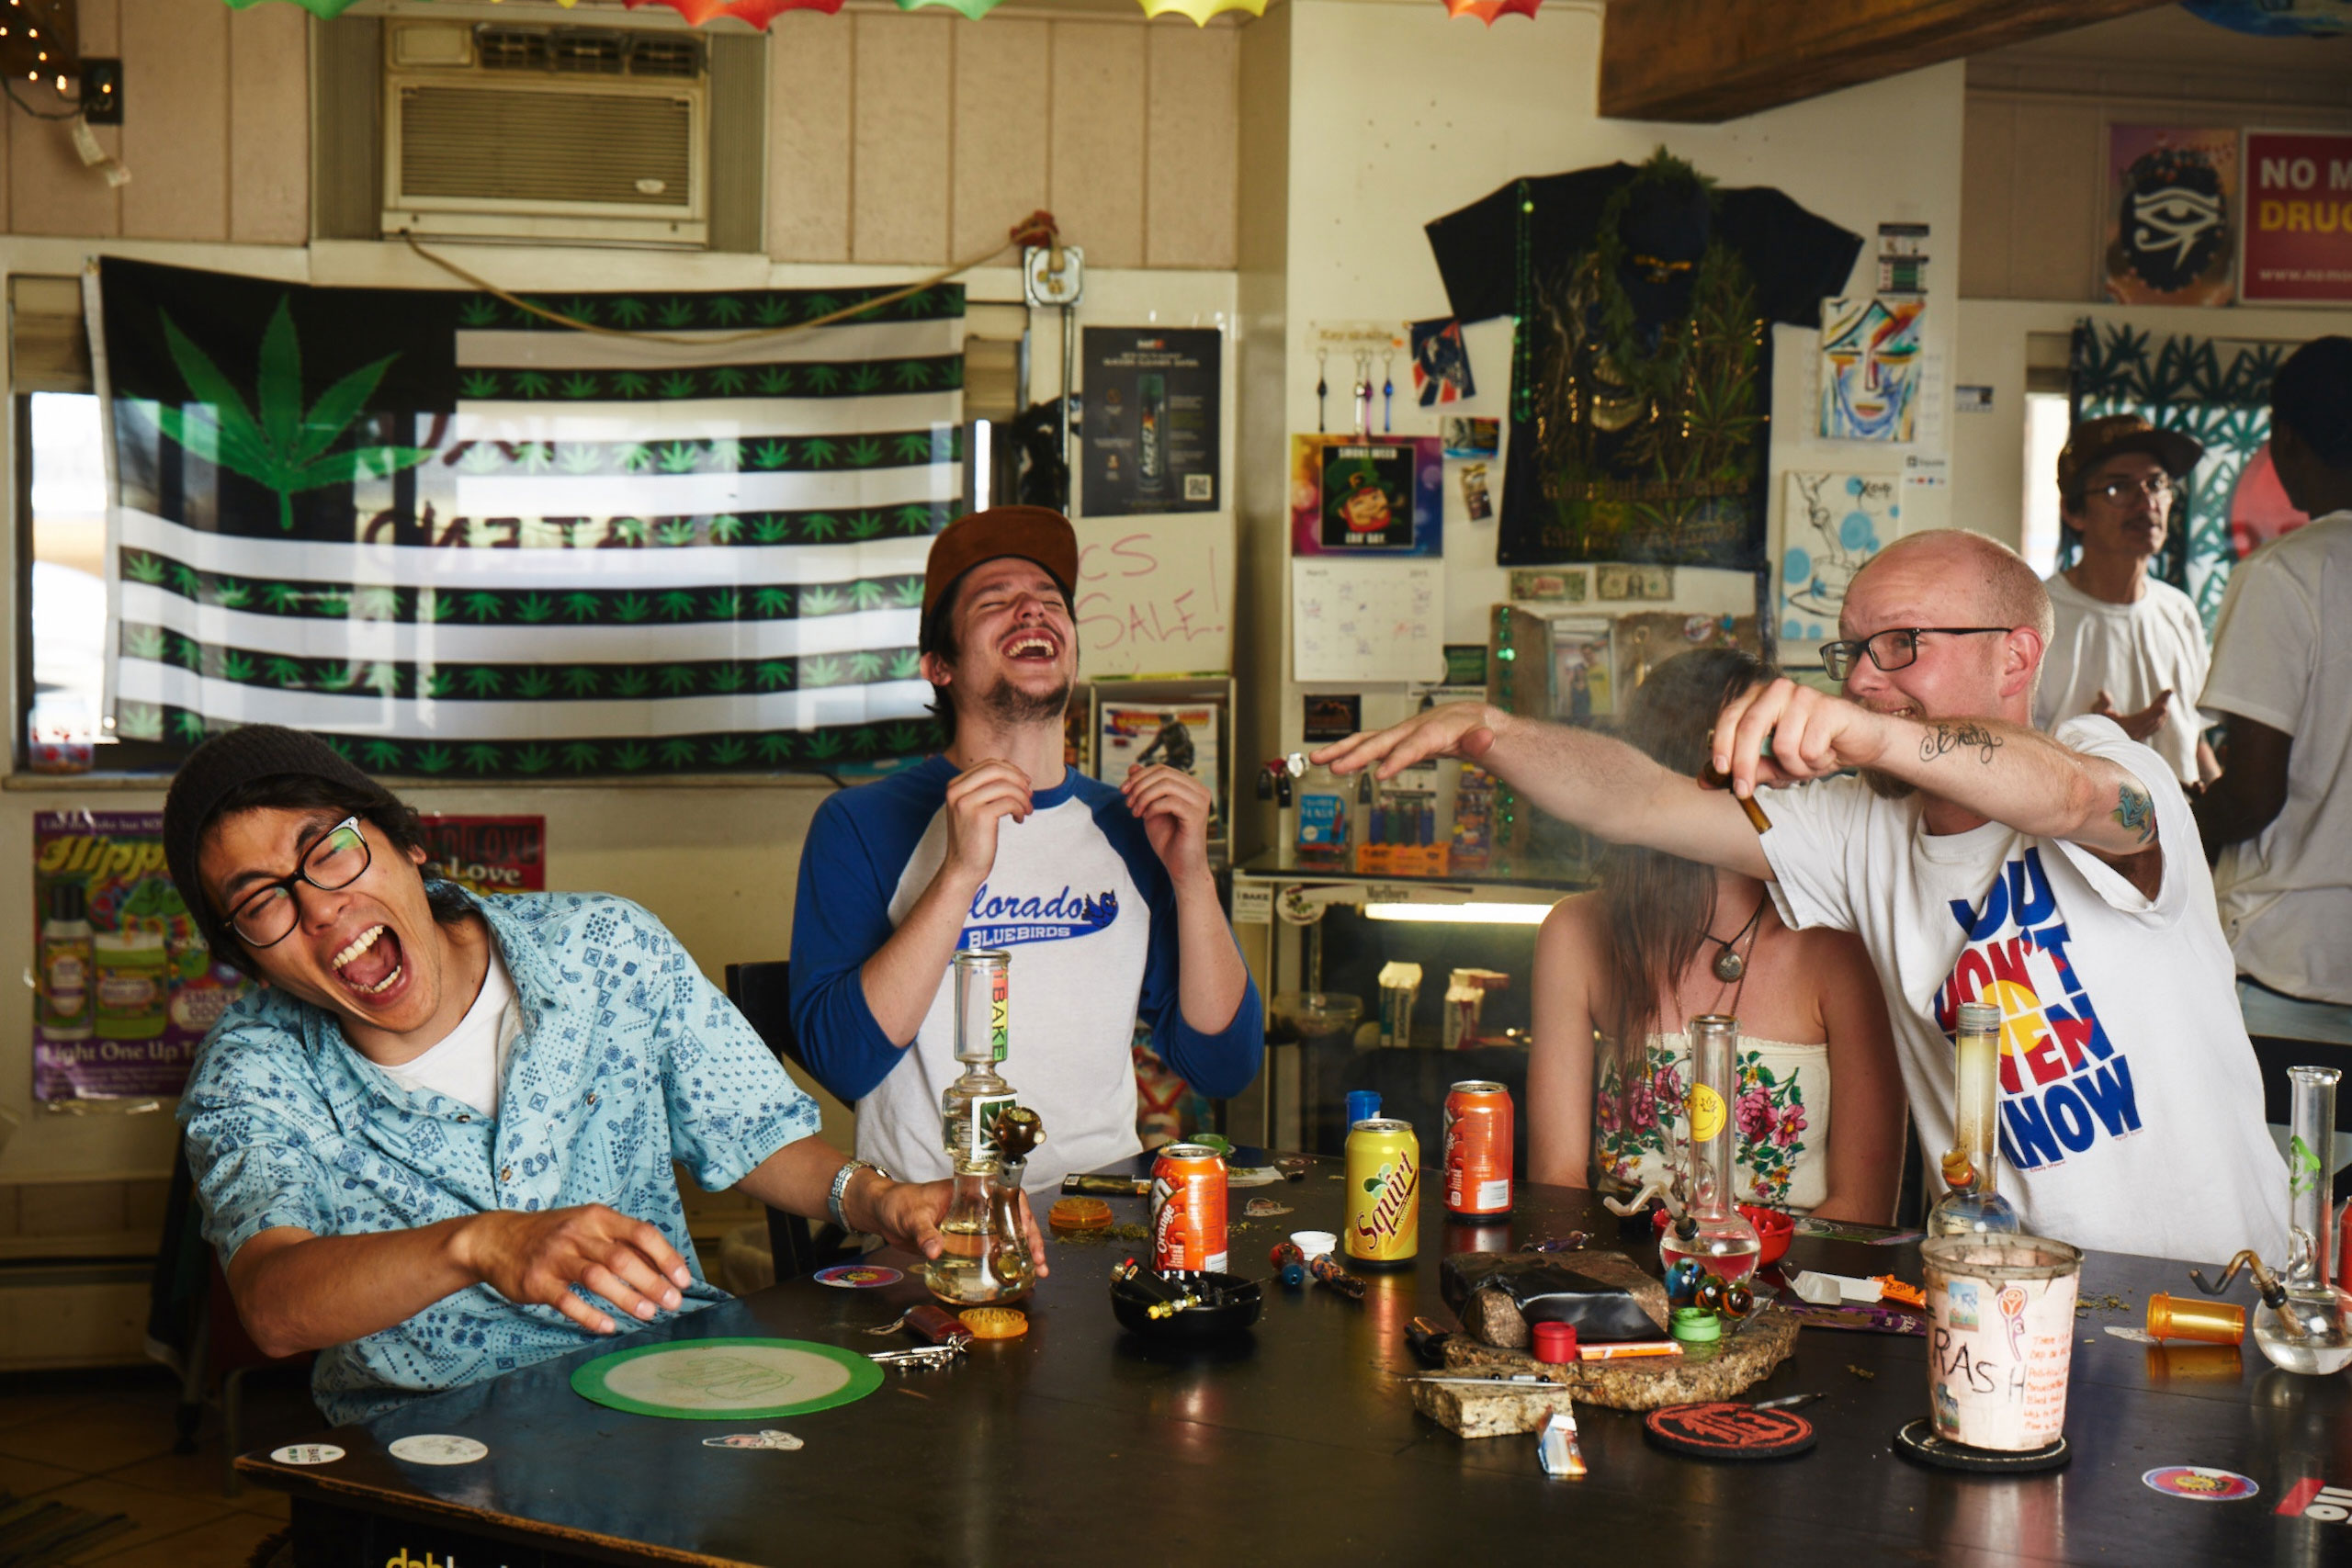 "<b>From left to right, Sean Chan, 23, Jordan Lenhard, 23, Kim Lefebure, 21, Ben Daily, 25, Charles Sanchez, 52.</b> Lenhard: ""The key benefits of marijuana for me are the pain relief after long days, as well as  an alcohol substitute for stress relief which significantly helps me handle my busy lifestyle."""